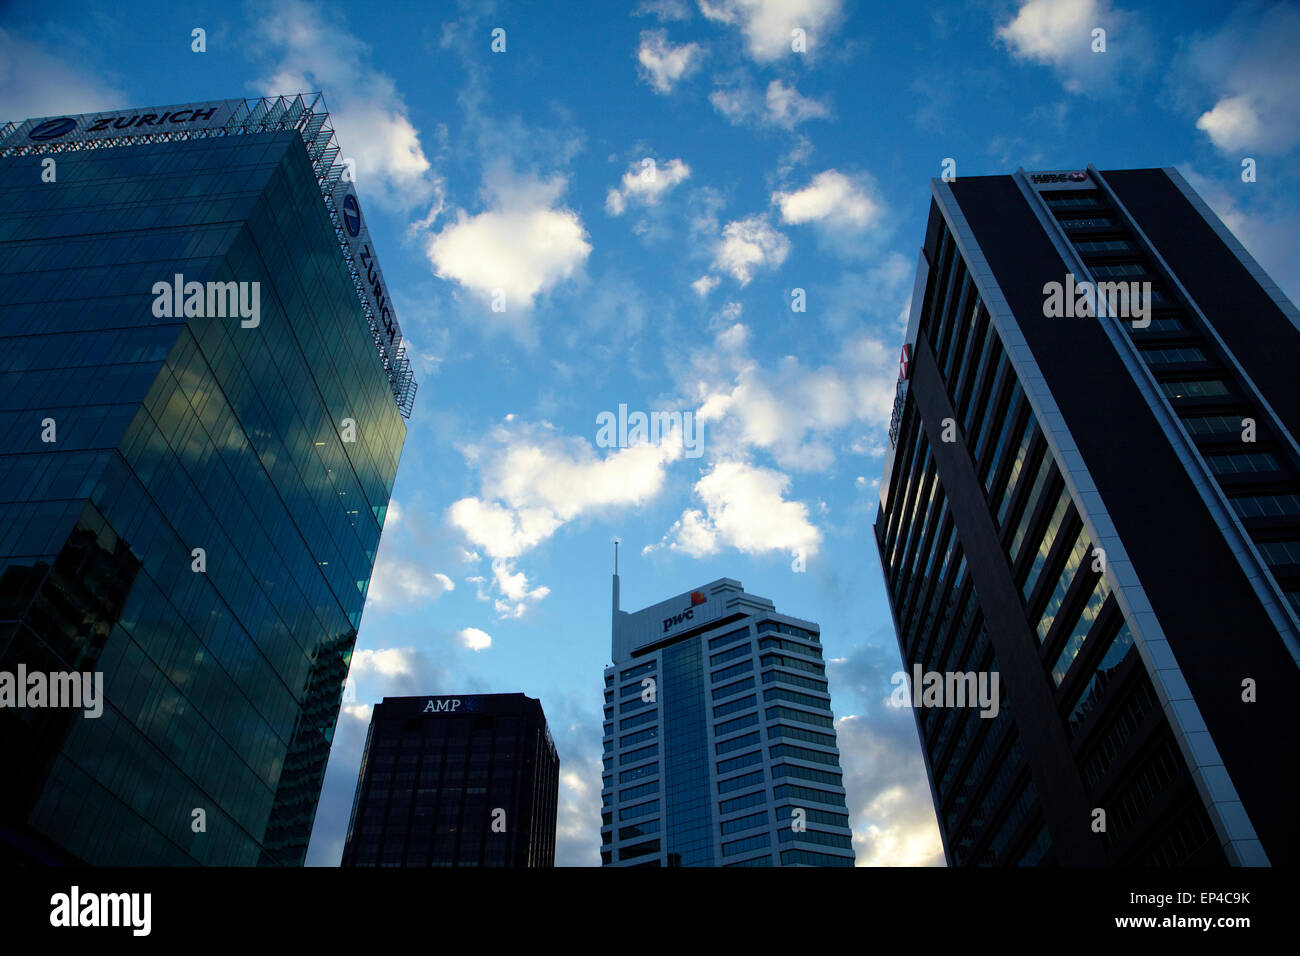 High-rise office buildings, Auckland CBD, North Island, New Zealand - Stock Image